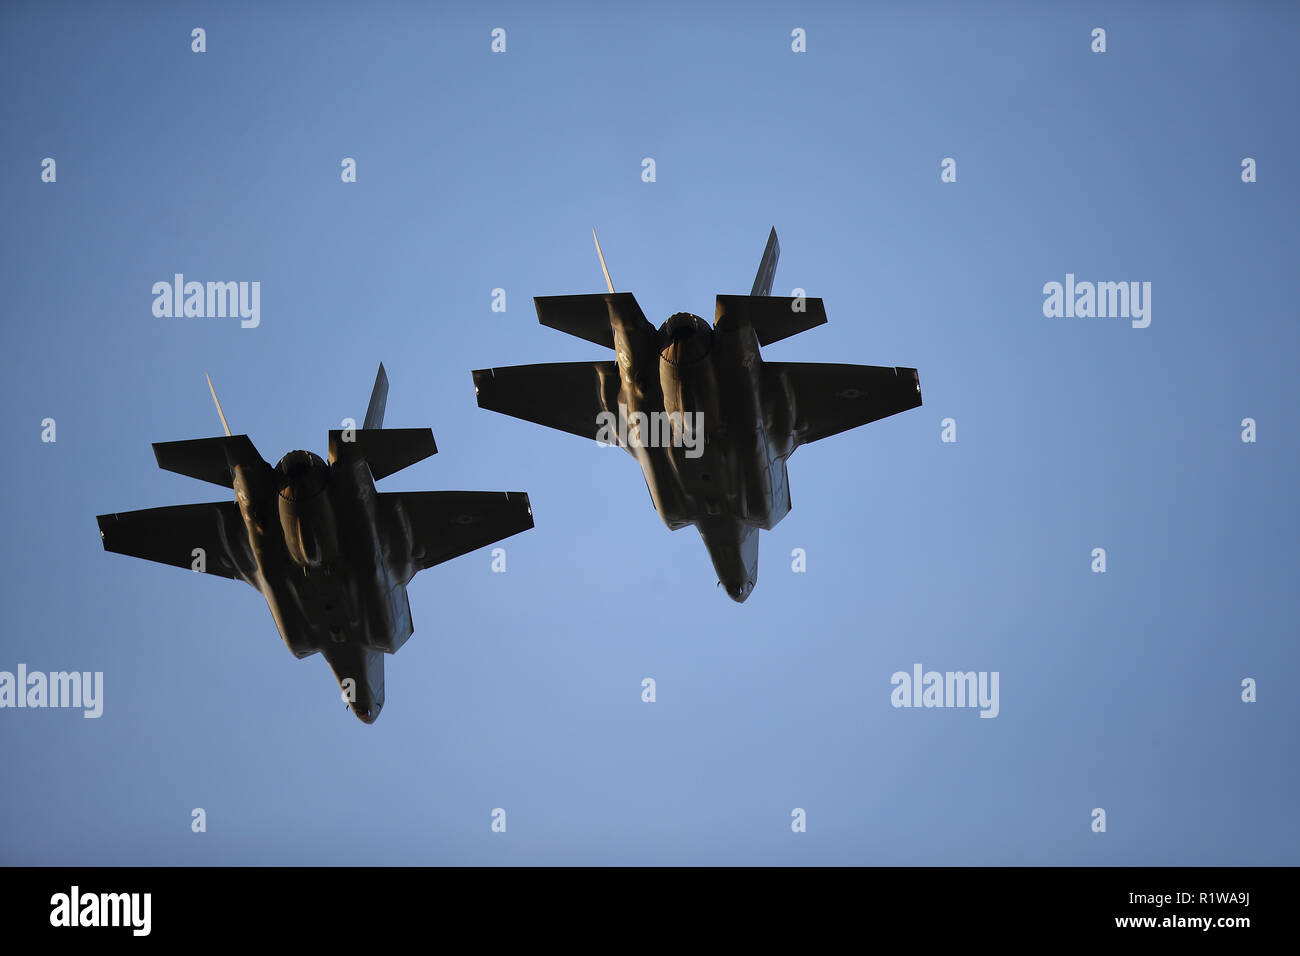 F-35A jets from the 31st Test evaluation squadron at Edwards Air Force Base - Stock Image